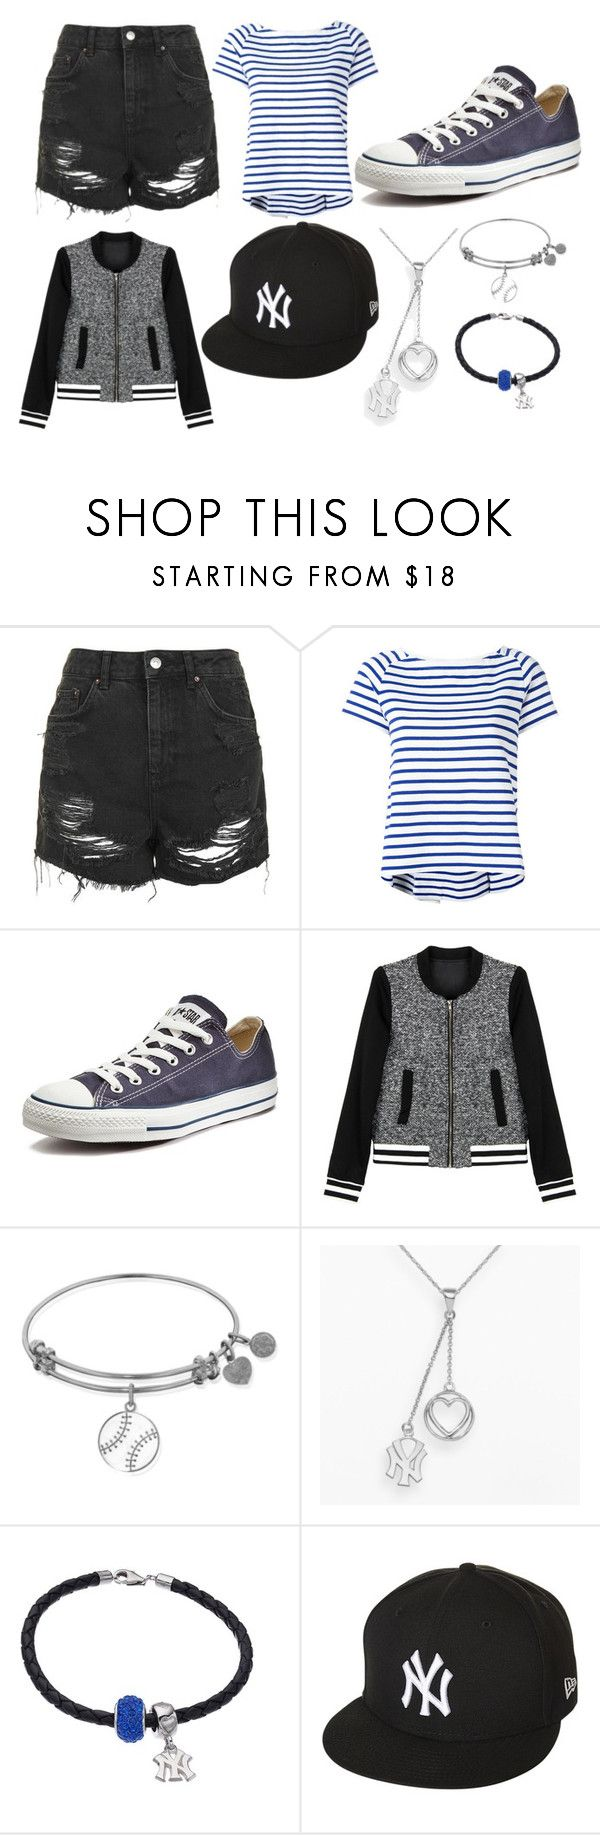 """""""Baseball Yankees"""" by thisisalle on Polyvore featuring Topshop, Sacai, Converse, WithChic, LogoArt and New Era"""